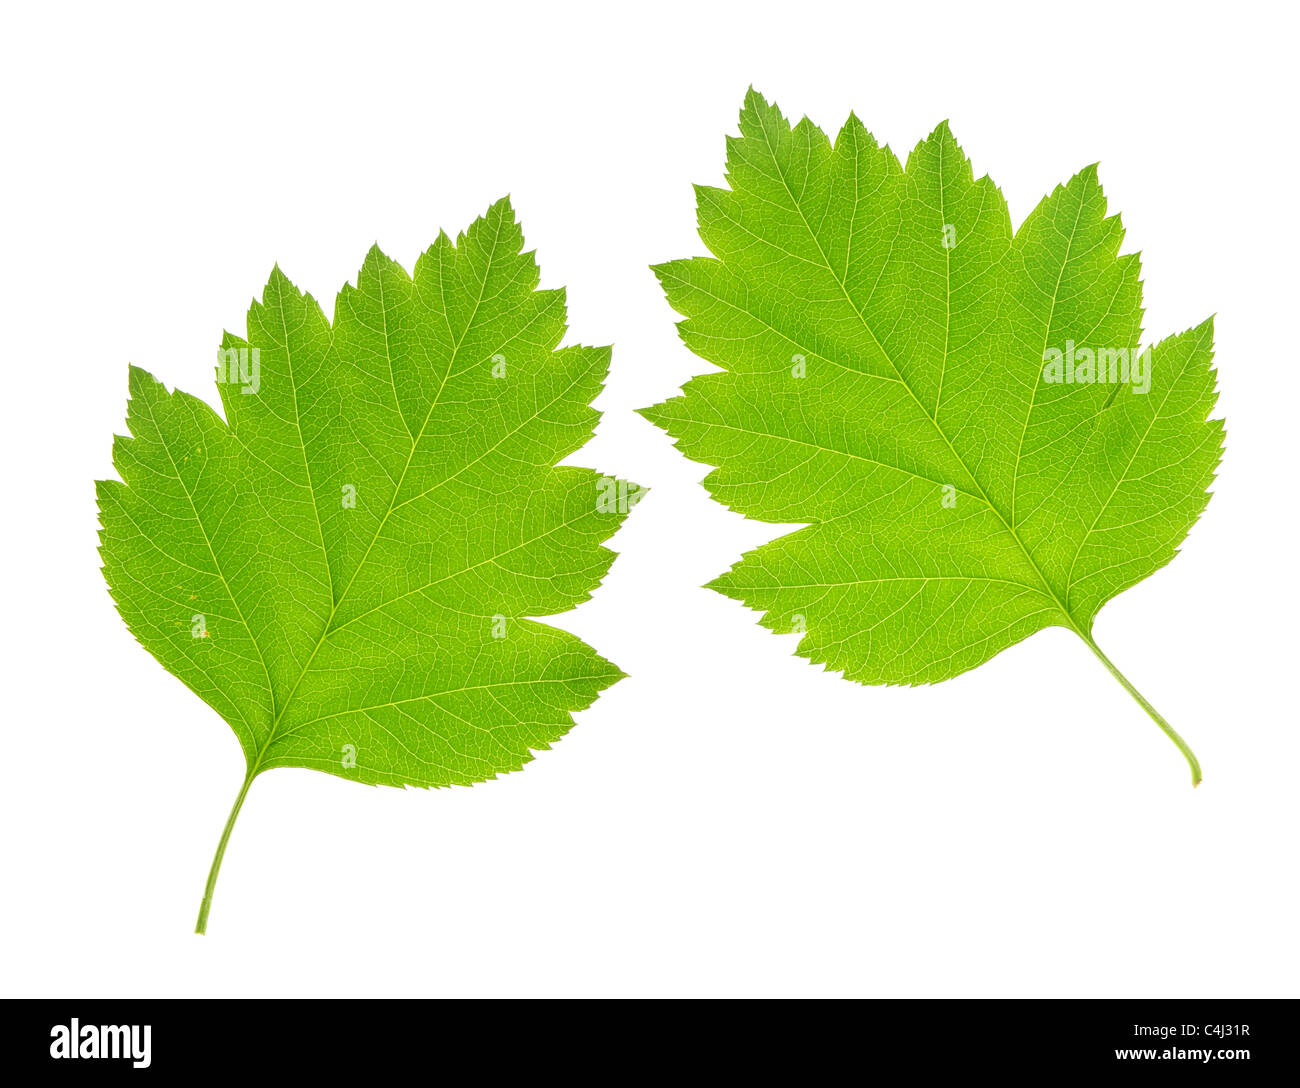 Lush green leaf isolated on white background - Stock Image